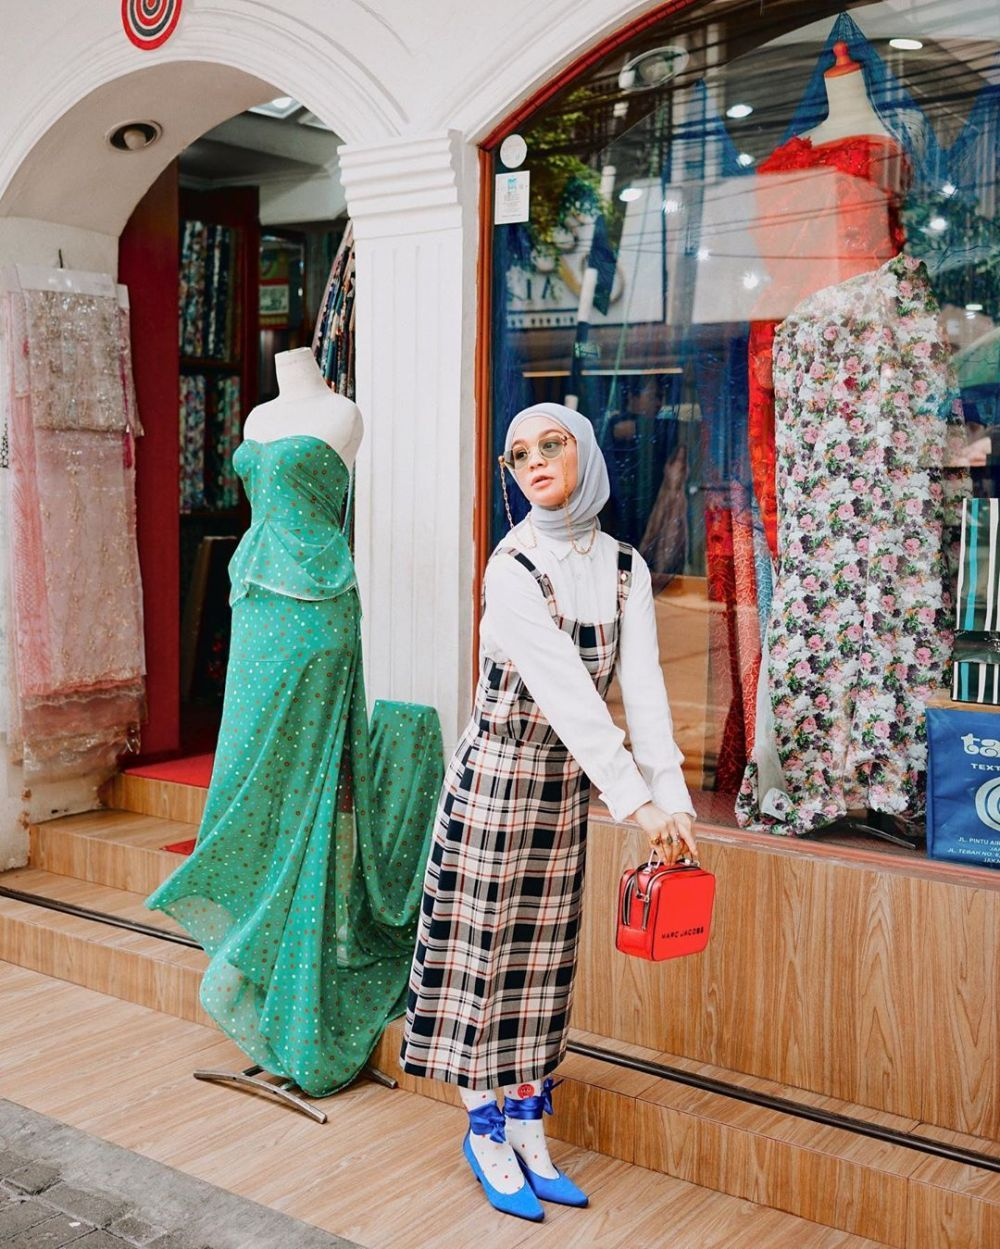 10 Ide Mix and Match Plaid Outfit ala Tantri Namirah, Stylish Abis!